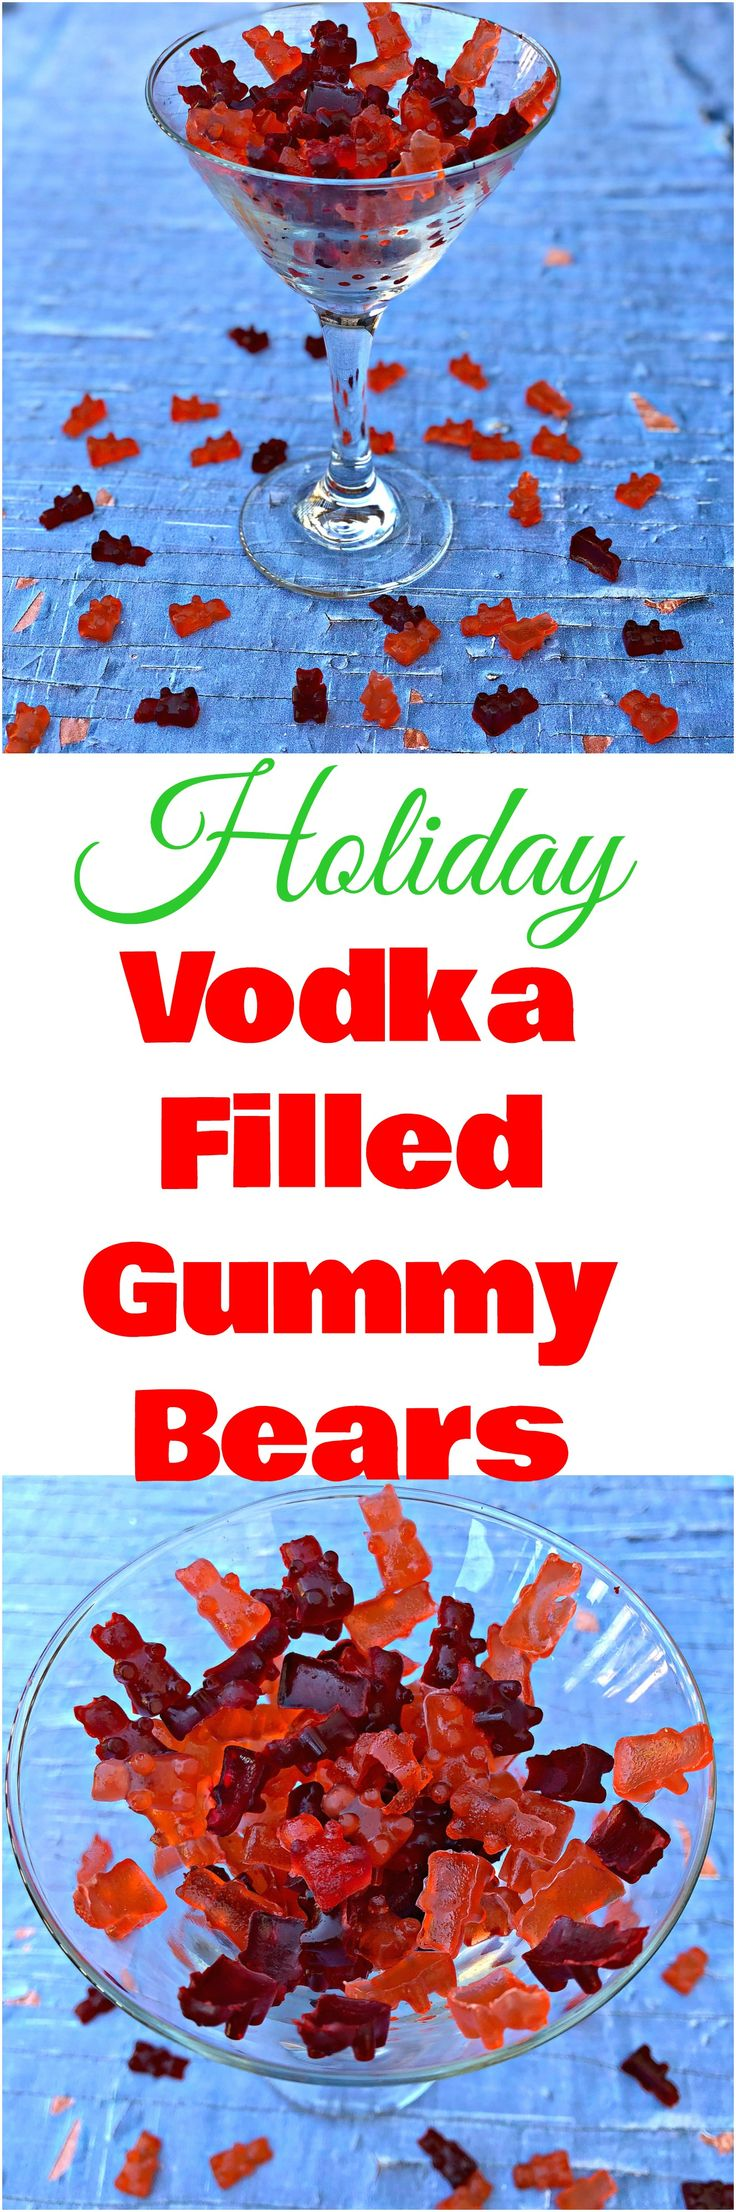 Vodka Filled Gummy Bear Shots have been molded with liquor and alcohol, a great alternative to vodka soaked gummy bears. Perfect for Jell-O shots for the holidays, Christmas, New Years Eve, and New Year's. #Cocktails #Holidays #Christmas #NYE #GummyBears #JelloShots #Shots #Dessert